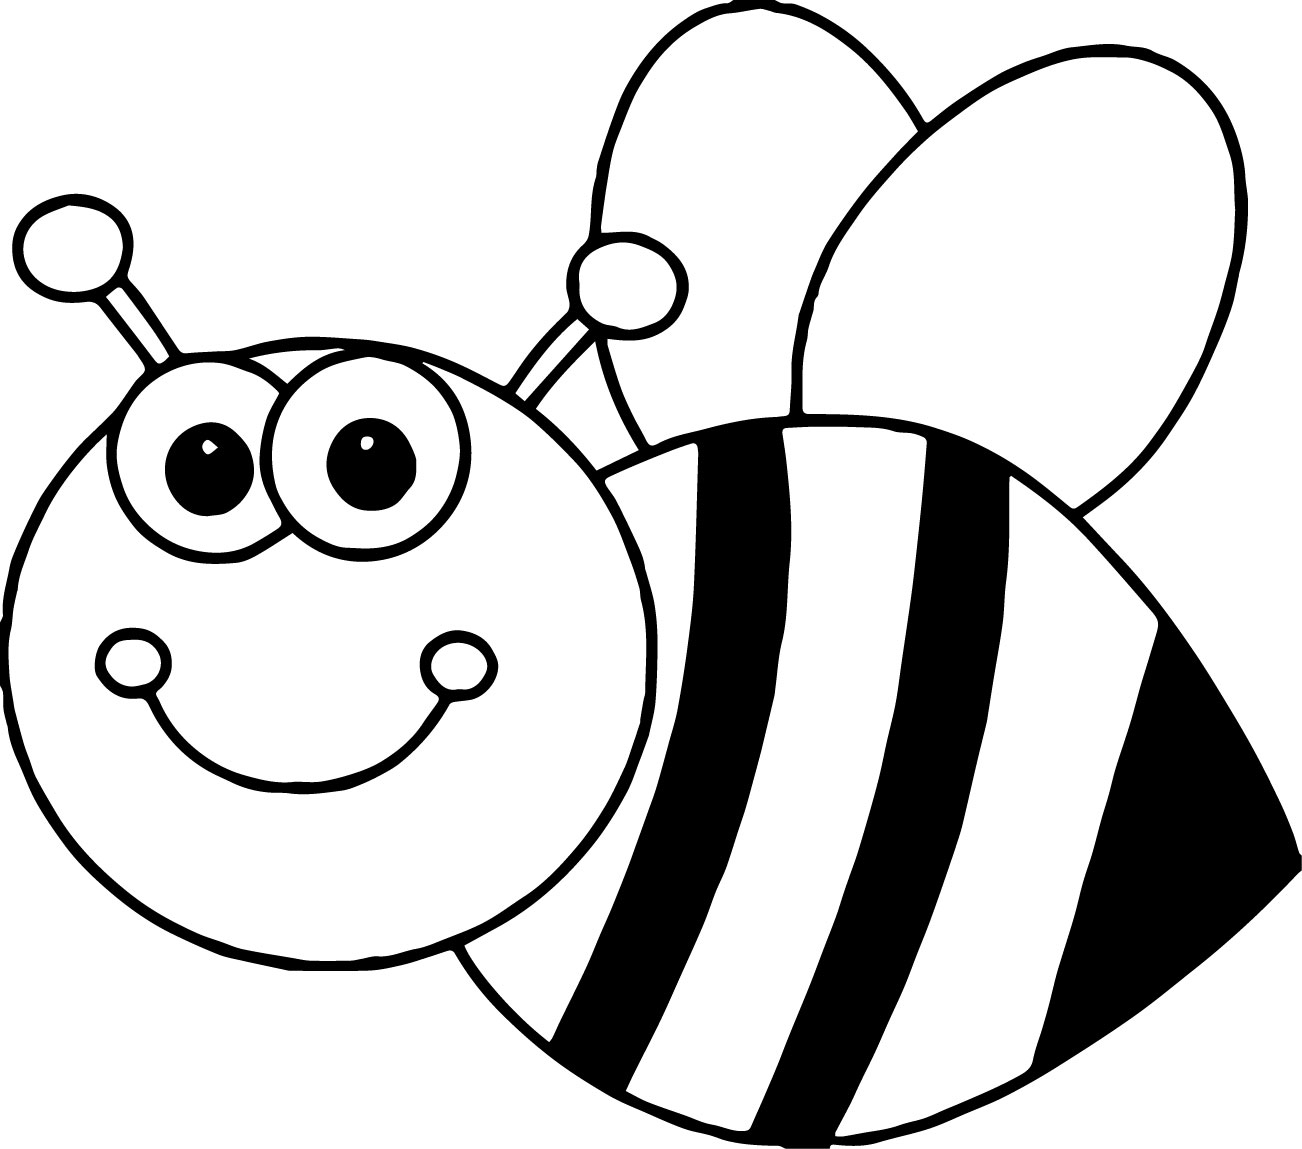 bumble bee coloring page - bumble bee transformer coloring pages sketch templates